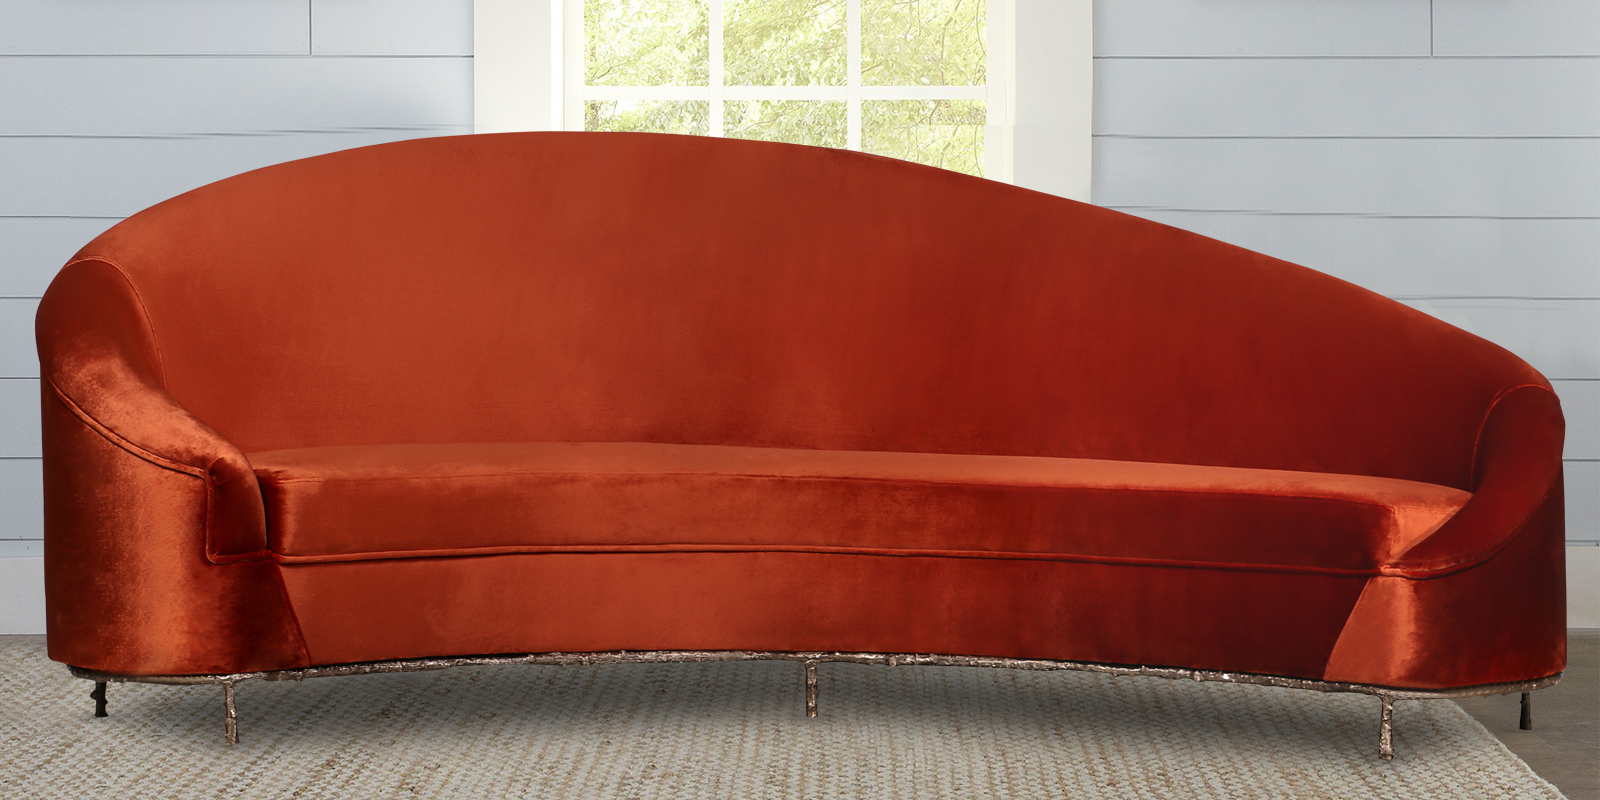 Charismatic Three Seater Sofa In Orange Velvet